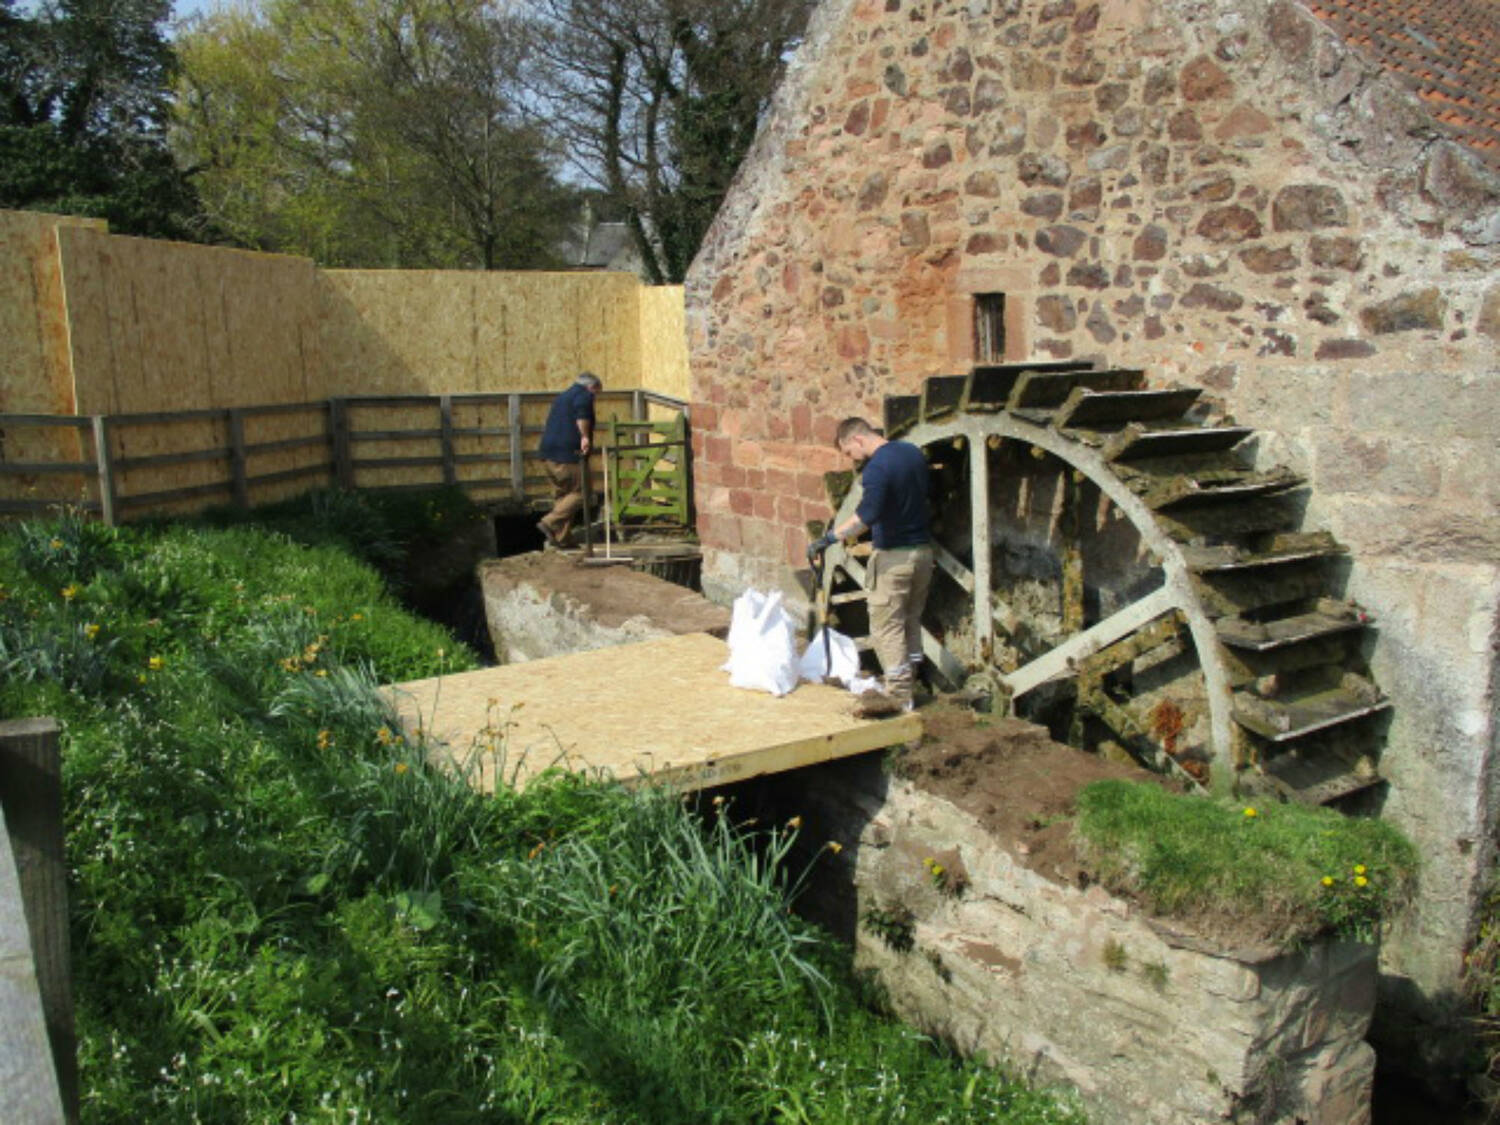 Two men work on the water wheel, surrounded by wooden boards.